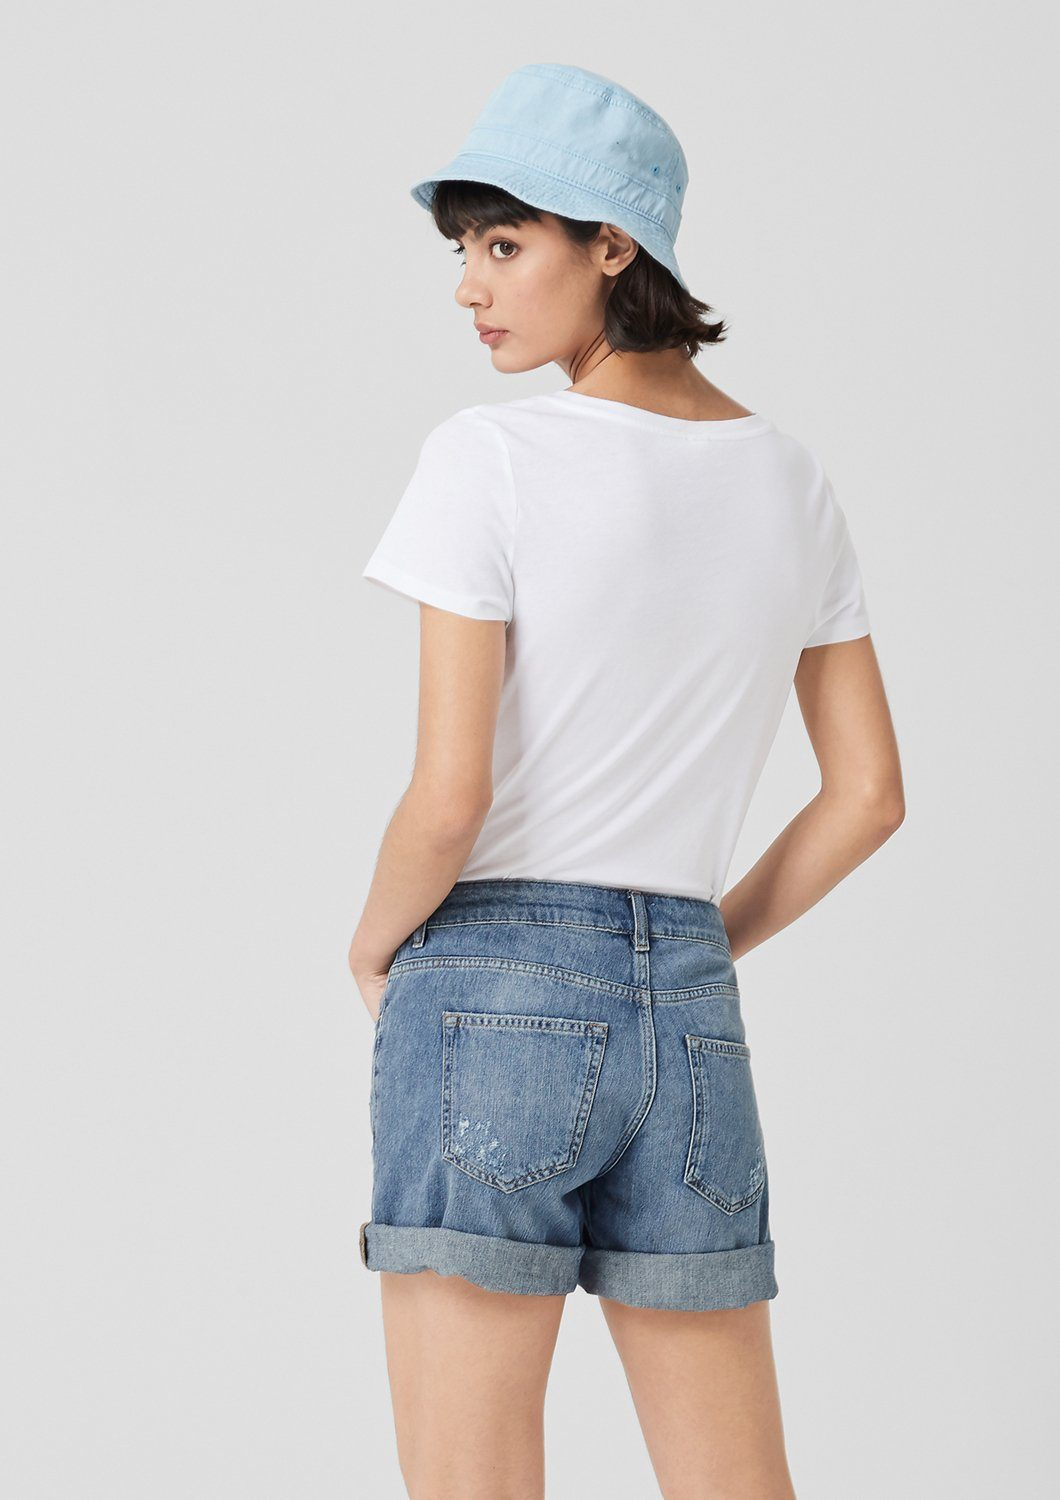 Q By AbbyLow Waist Kaufen Designed shorts s 9IHED2W